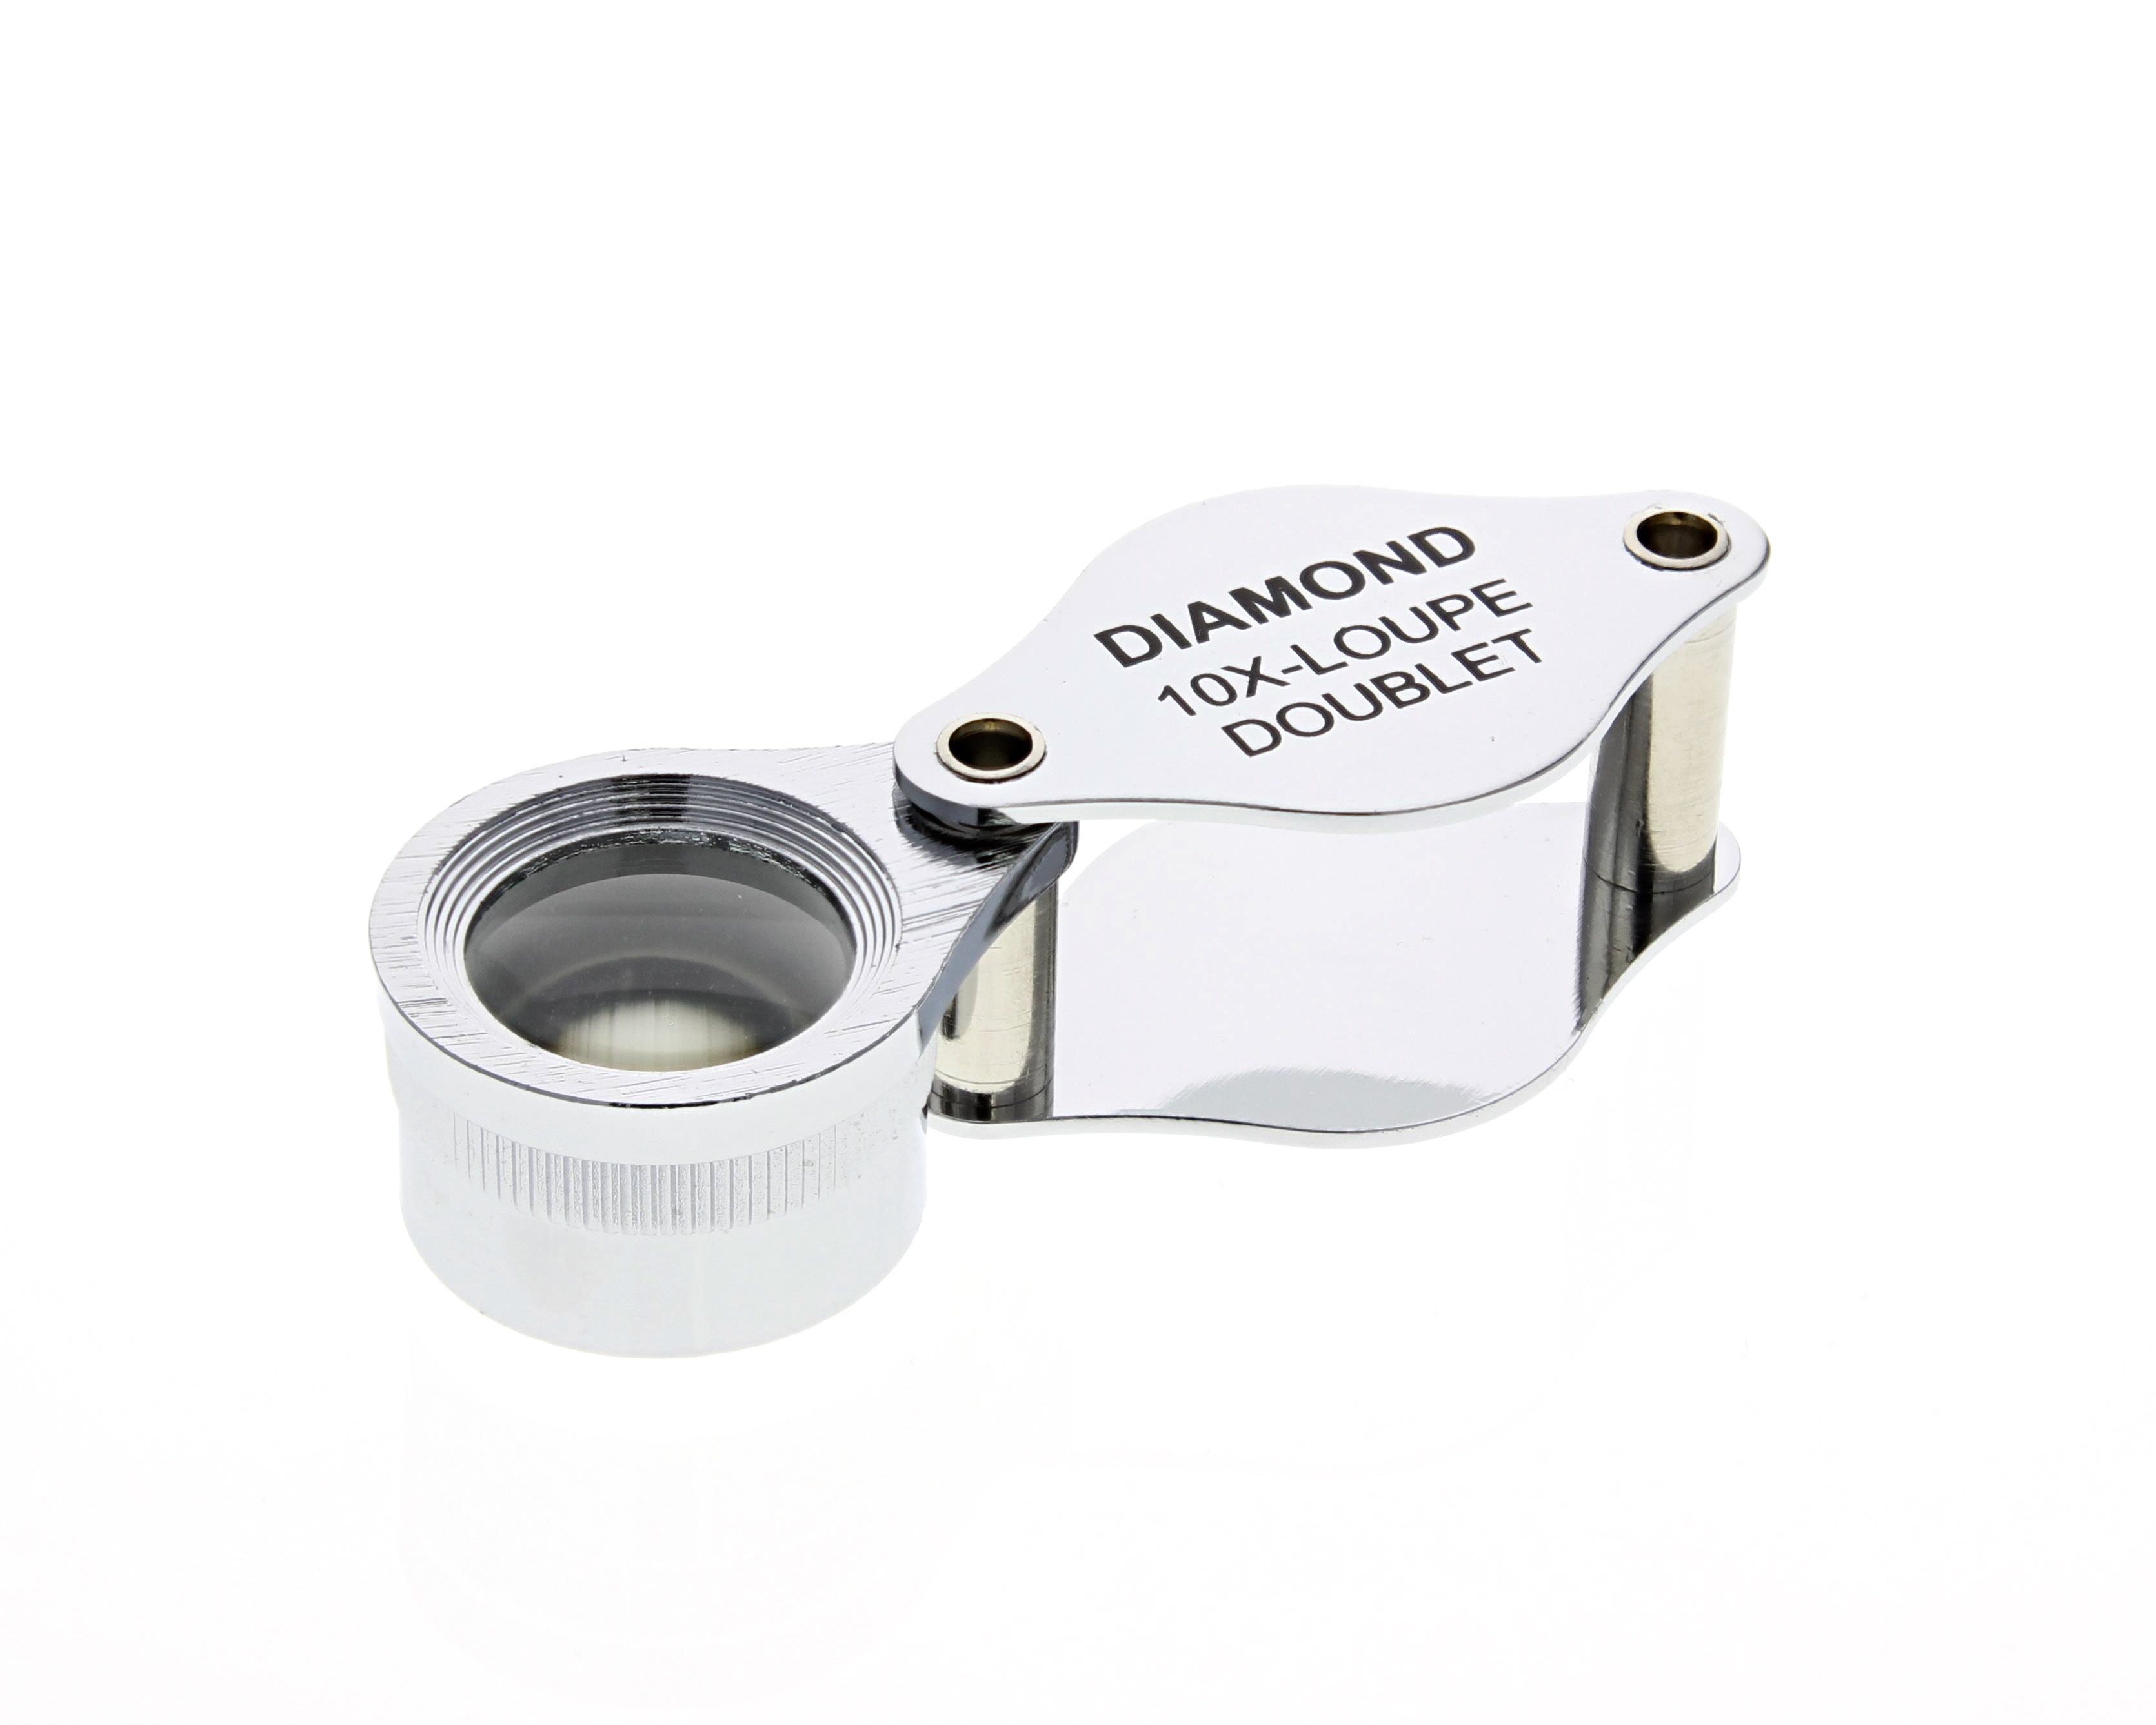 10X Jewelers Economy Loupe 18MM Magnifying Glass New